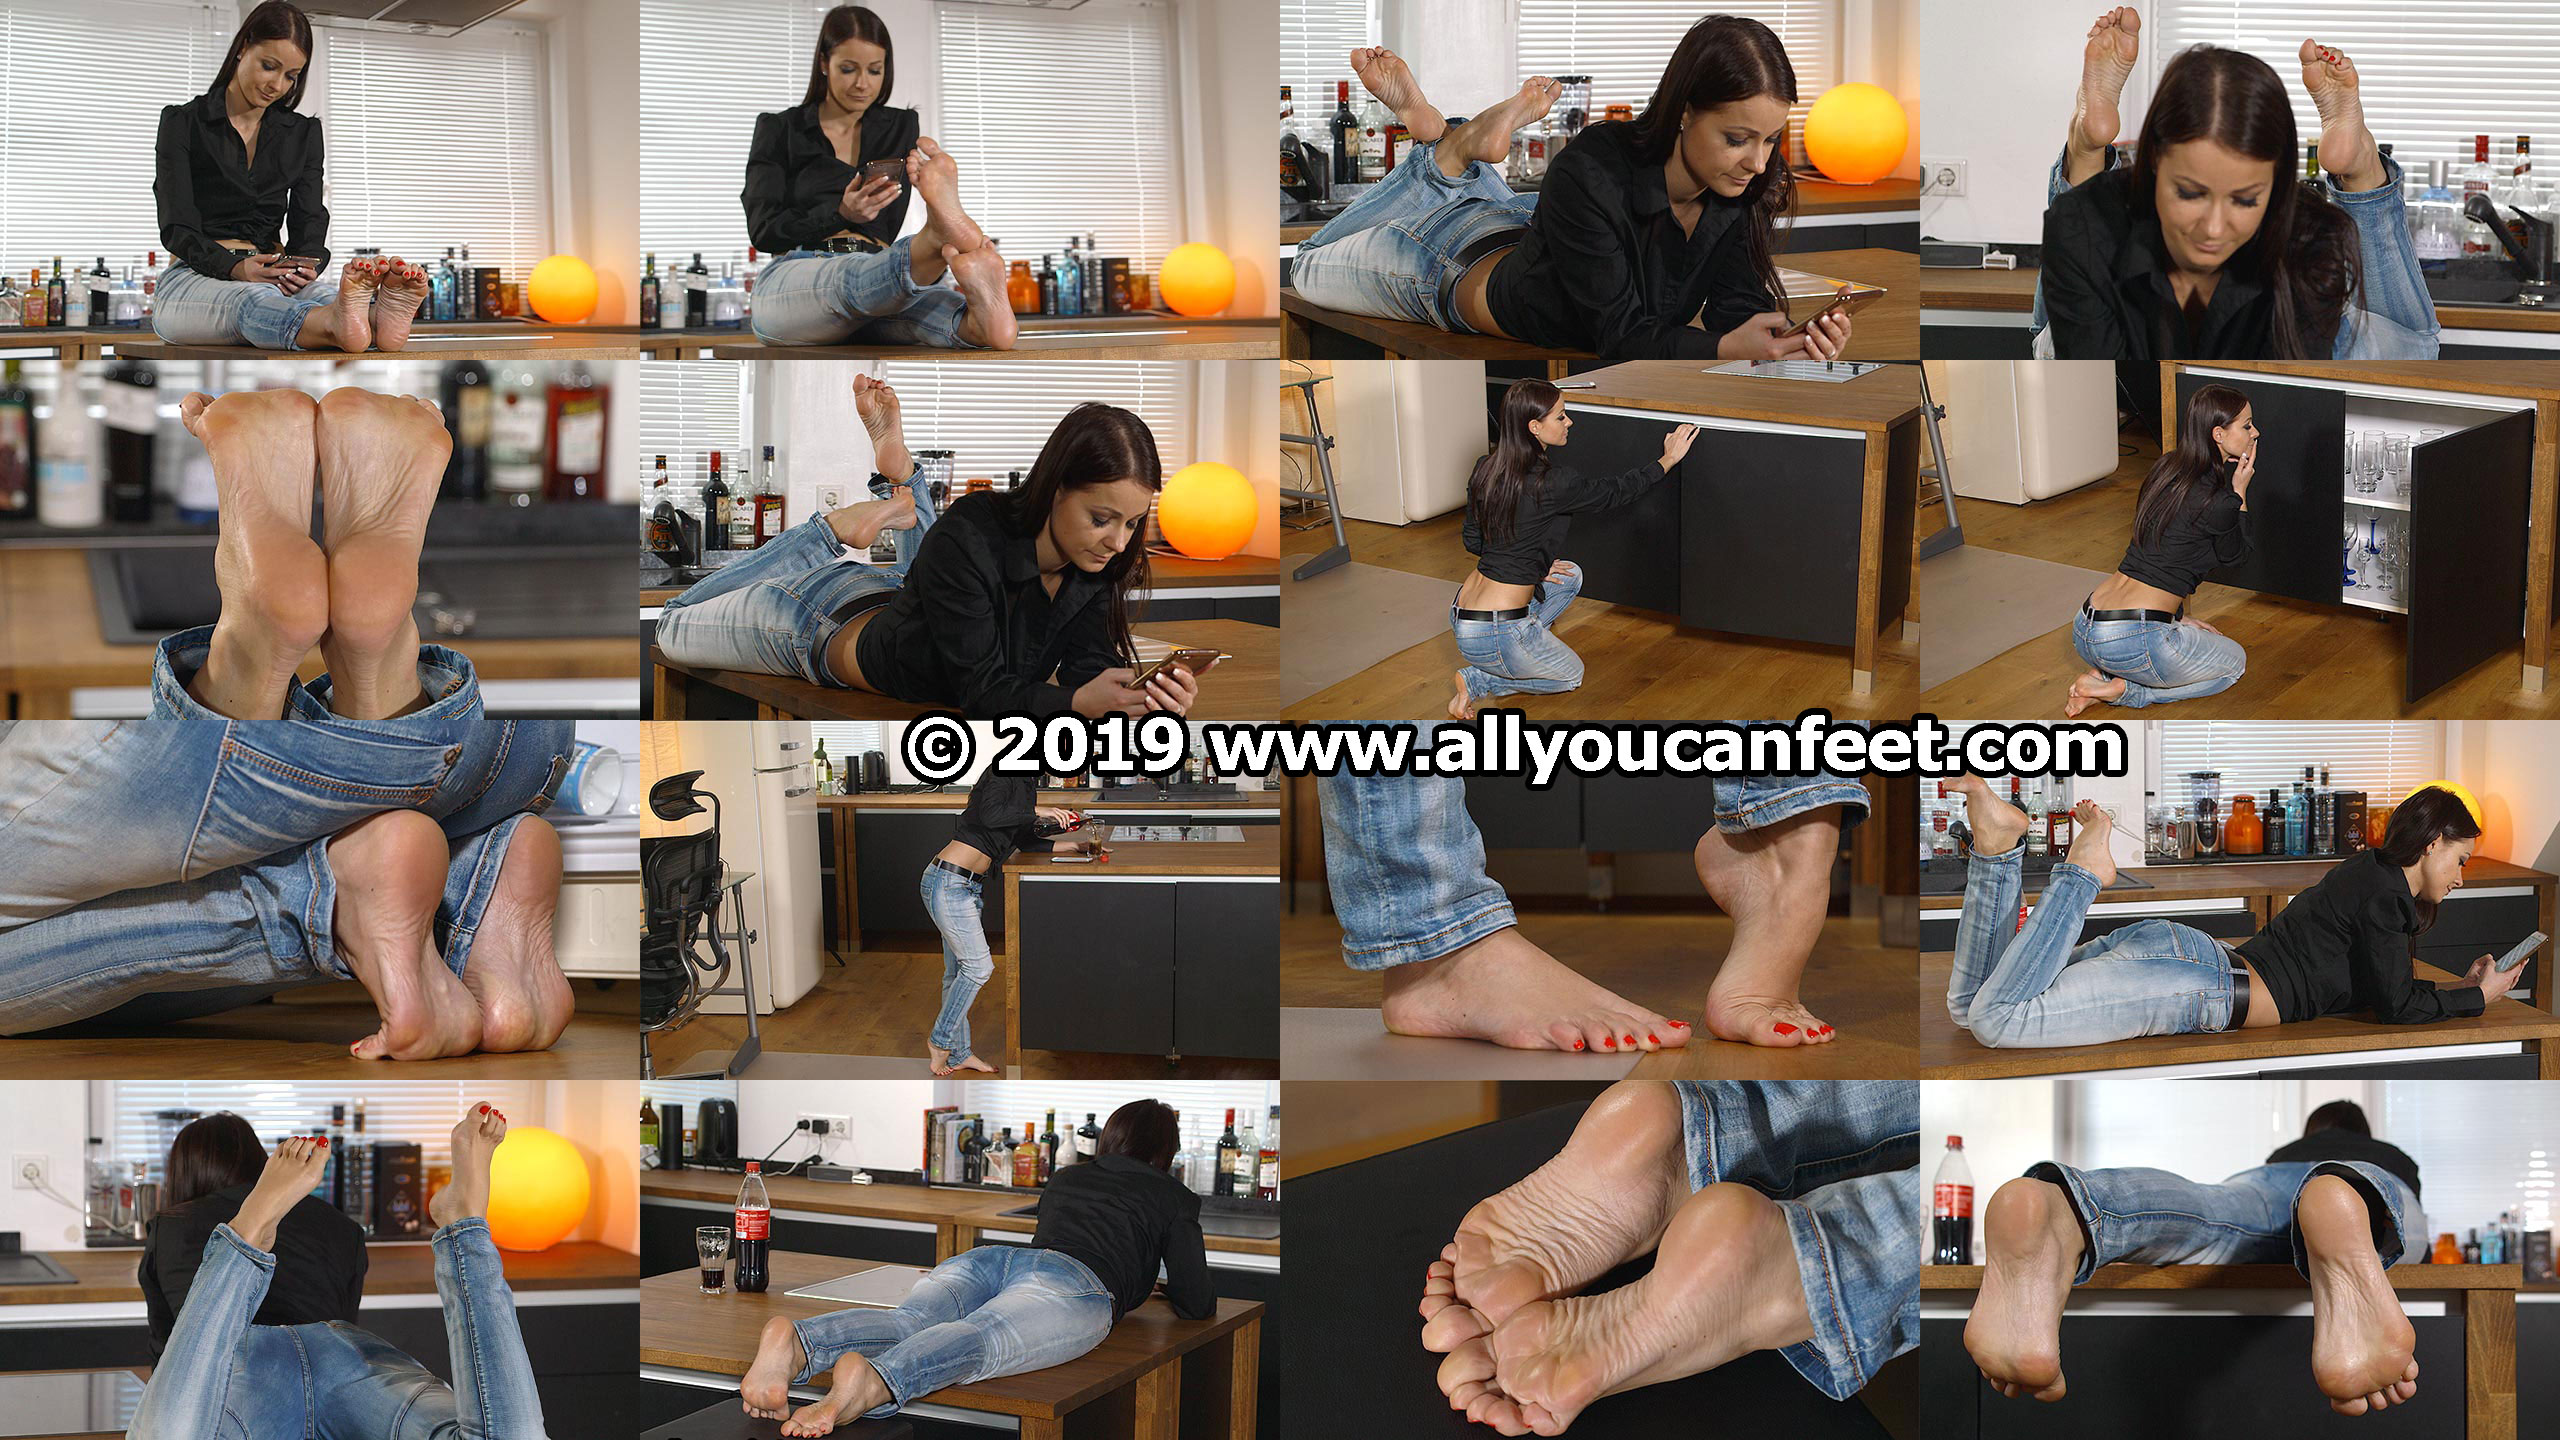 big preview pic from set 2538 showing Allyoucanfeet model Victoria